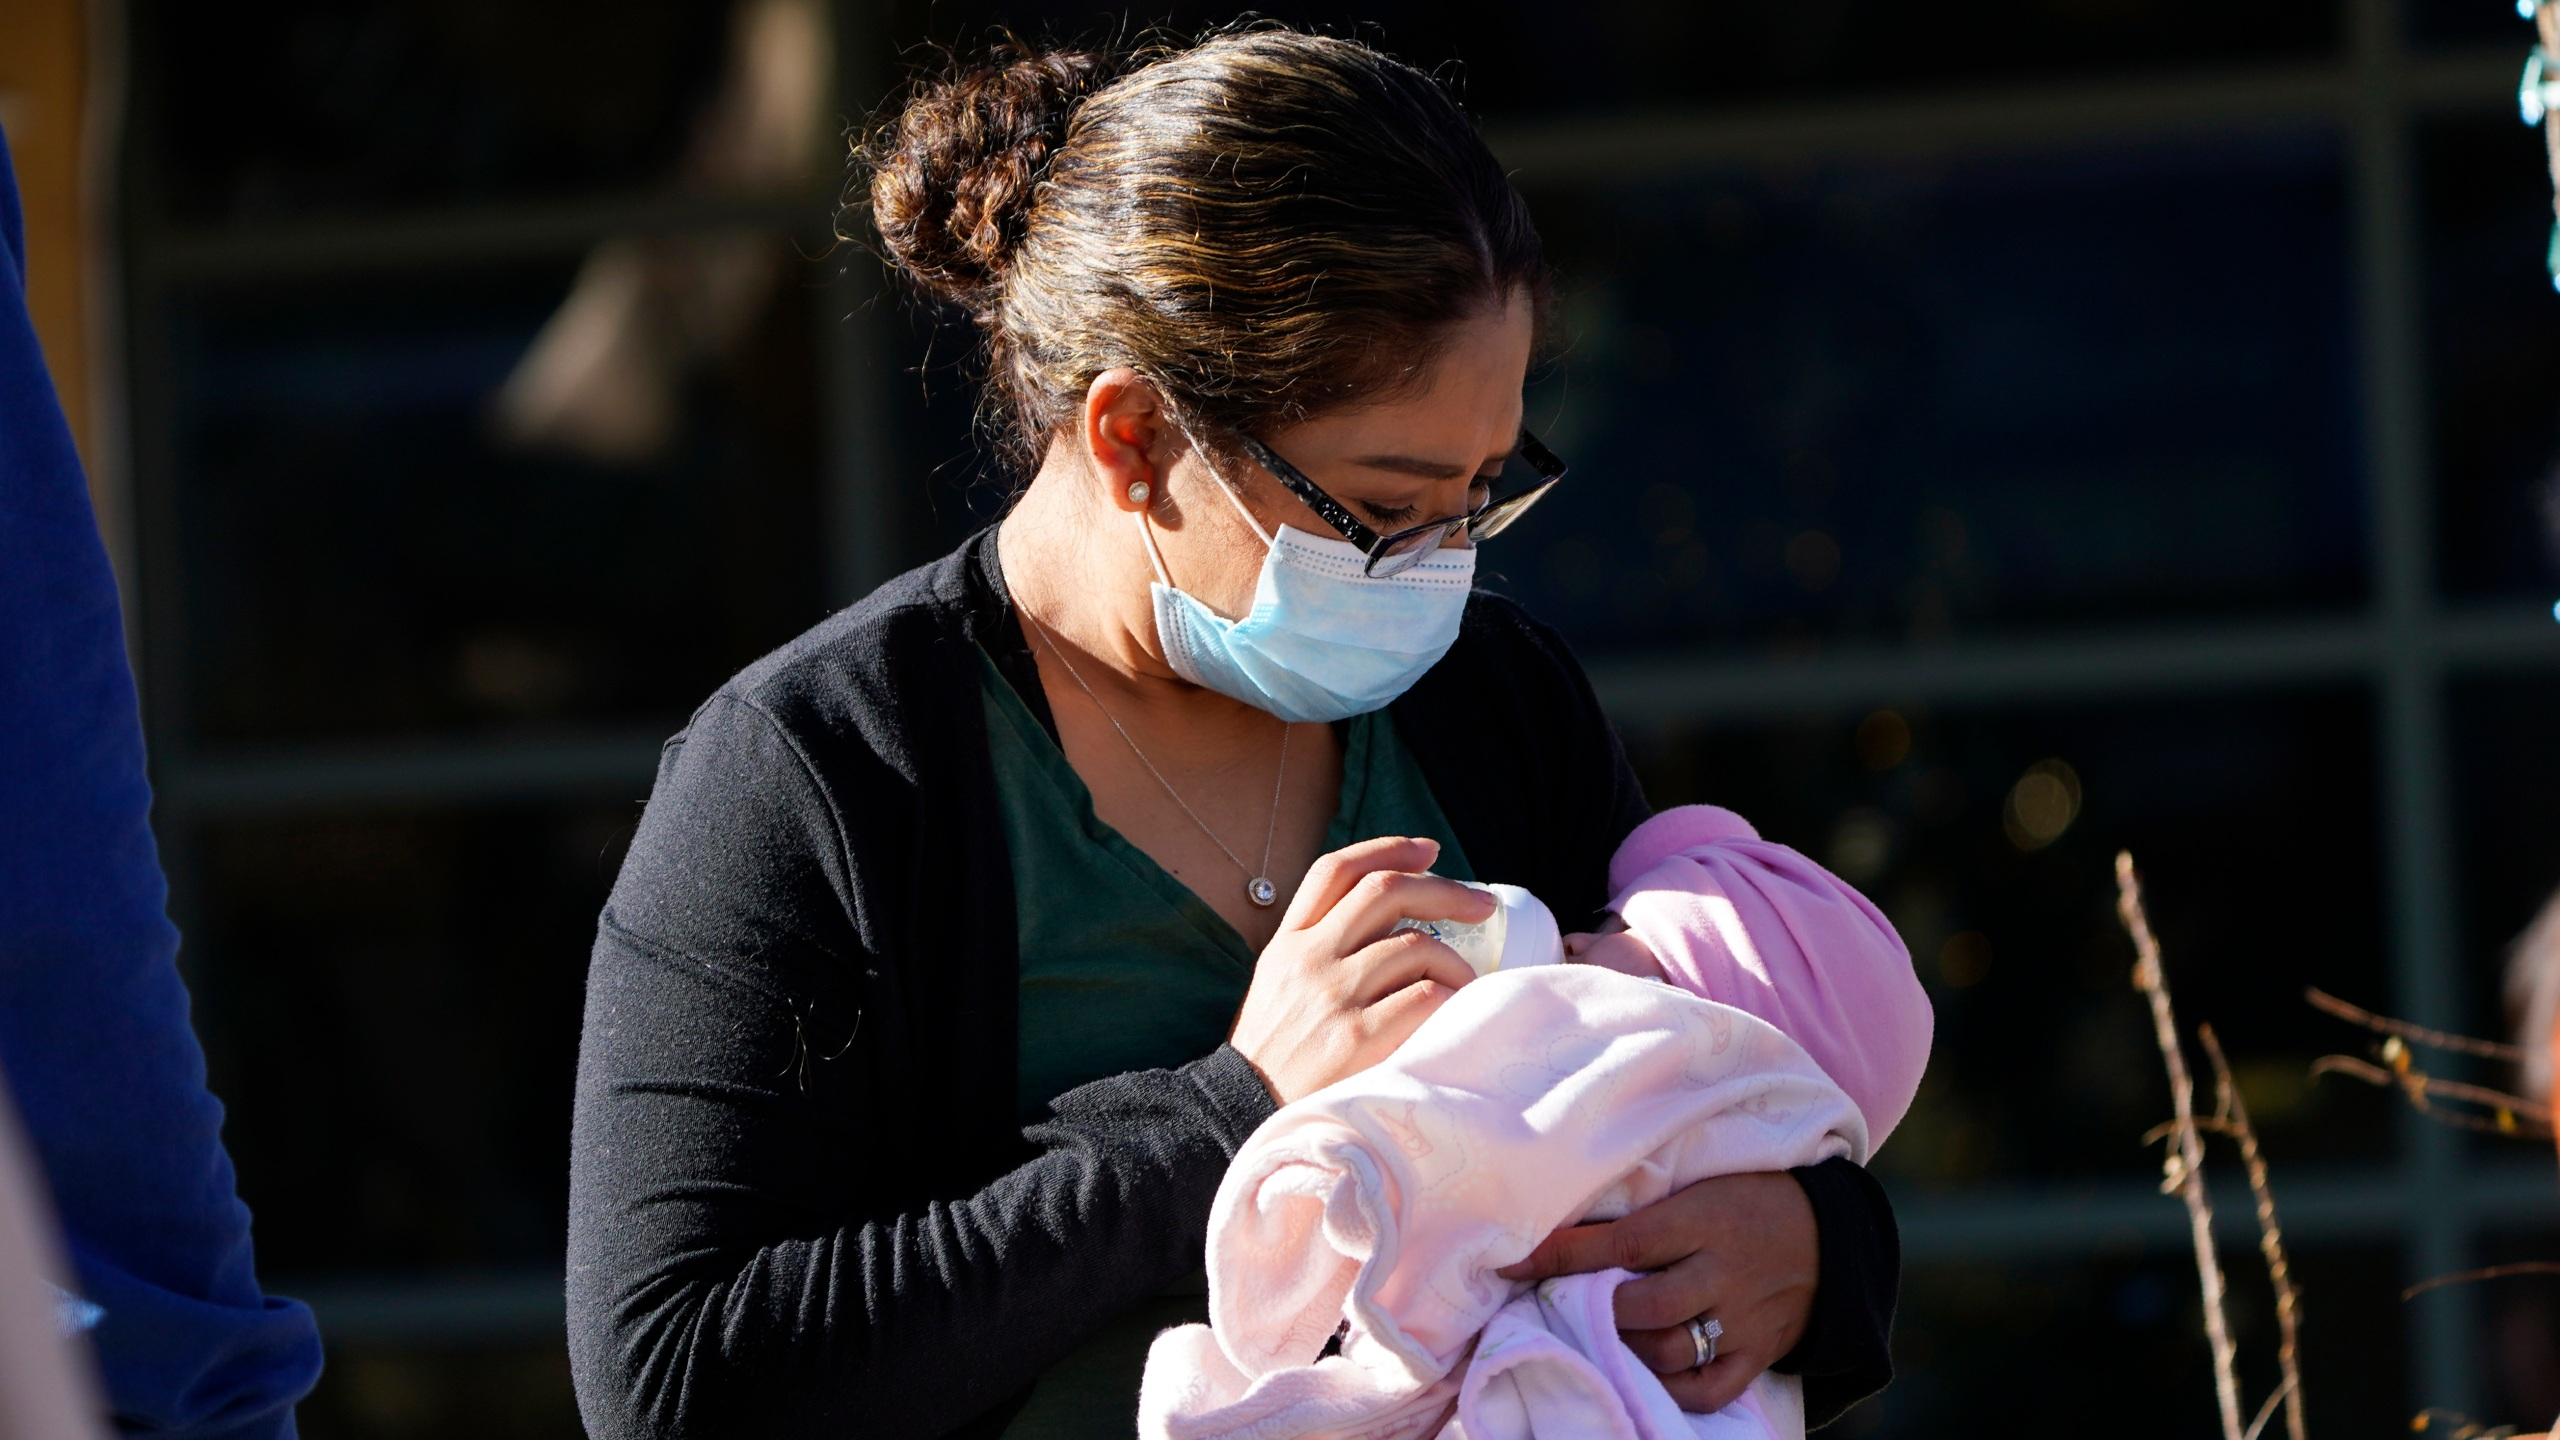 A woman feeds a baby while waiting for entry at the Denver Zoo Monday, Dec. 7, 2020, in east Denver. (AP Photo/David Zalubowski)